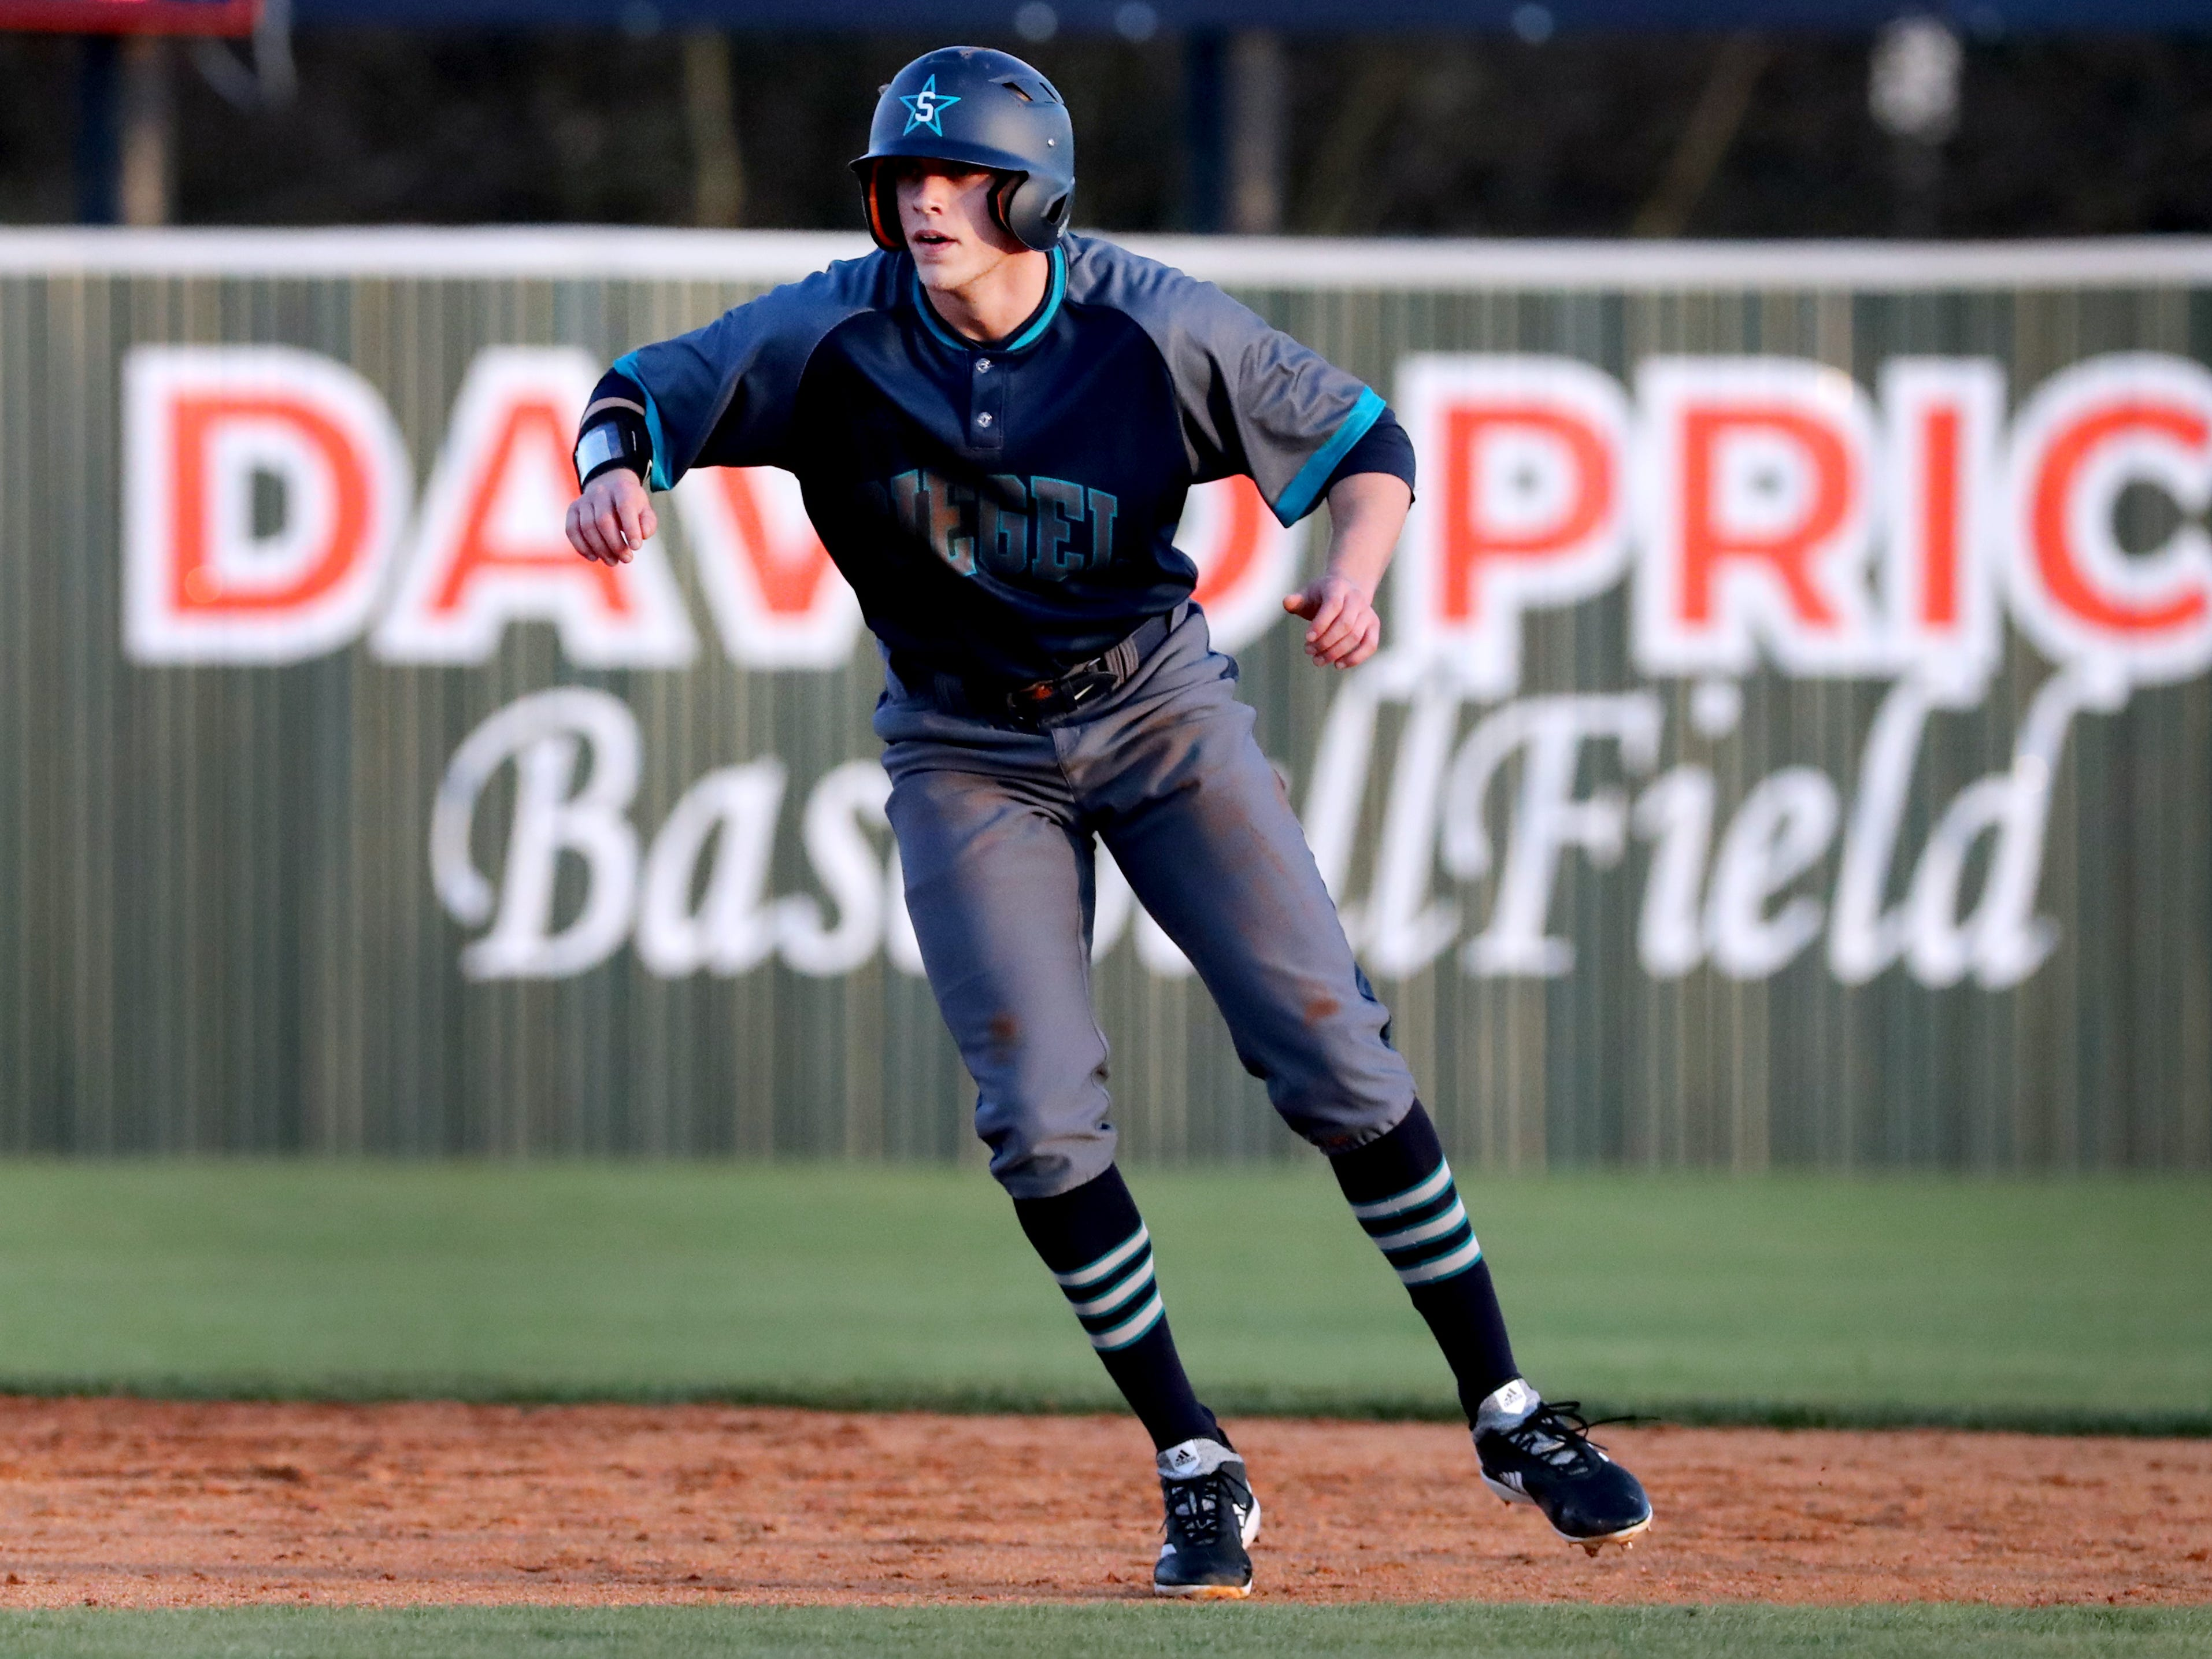 Siegel's Evan Milligan (9) takes a lead off second base during the game against Blackman, on Monday, March 11, 2019.